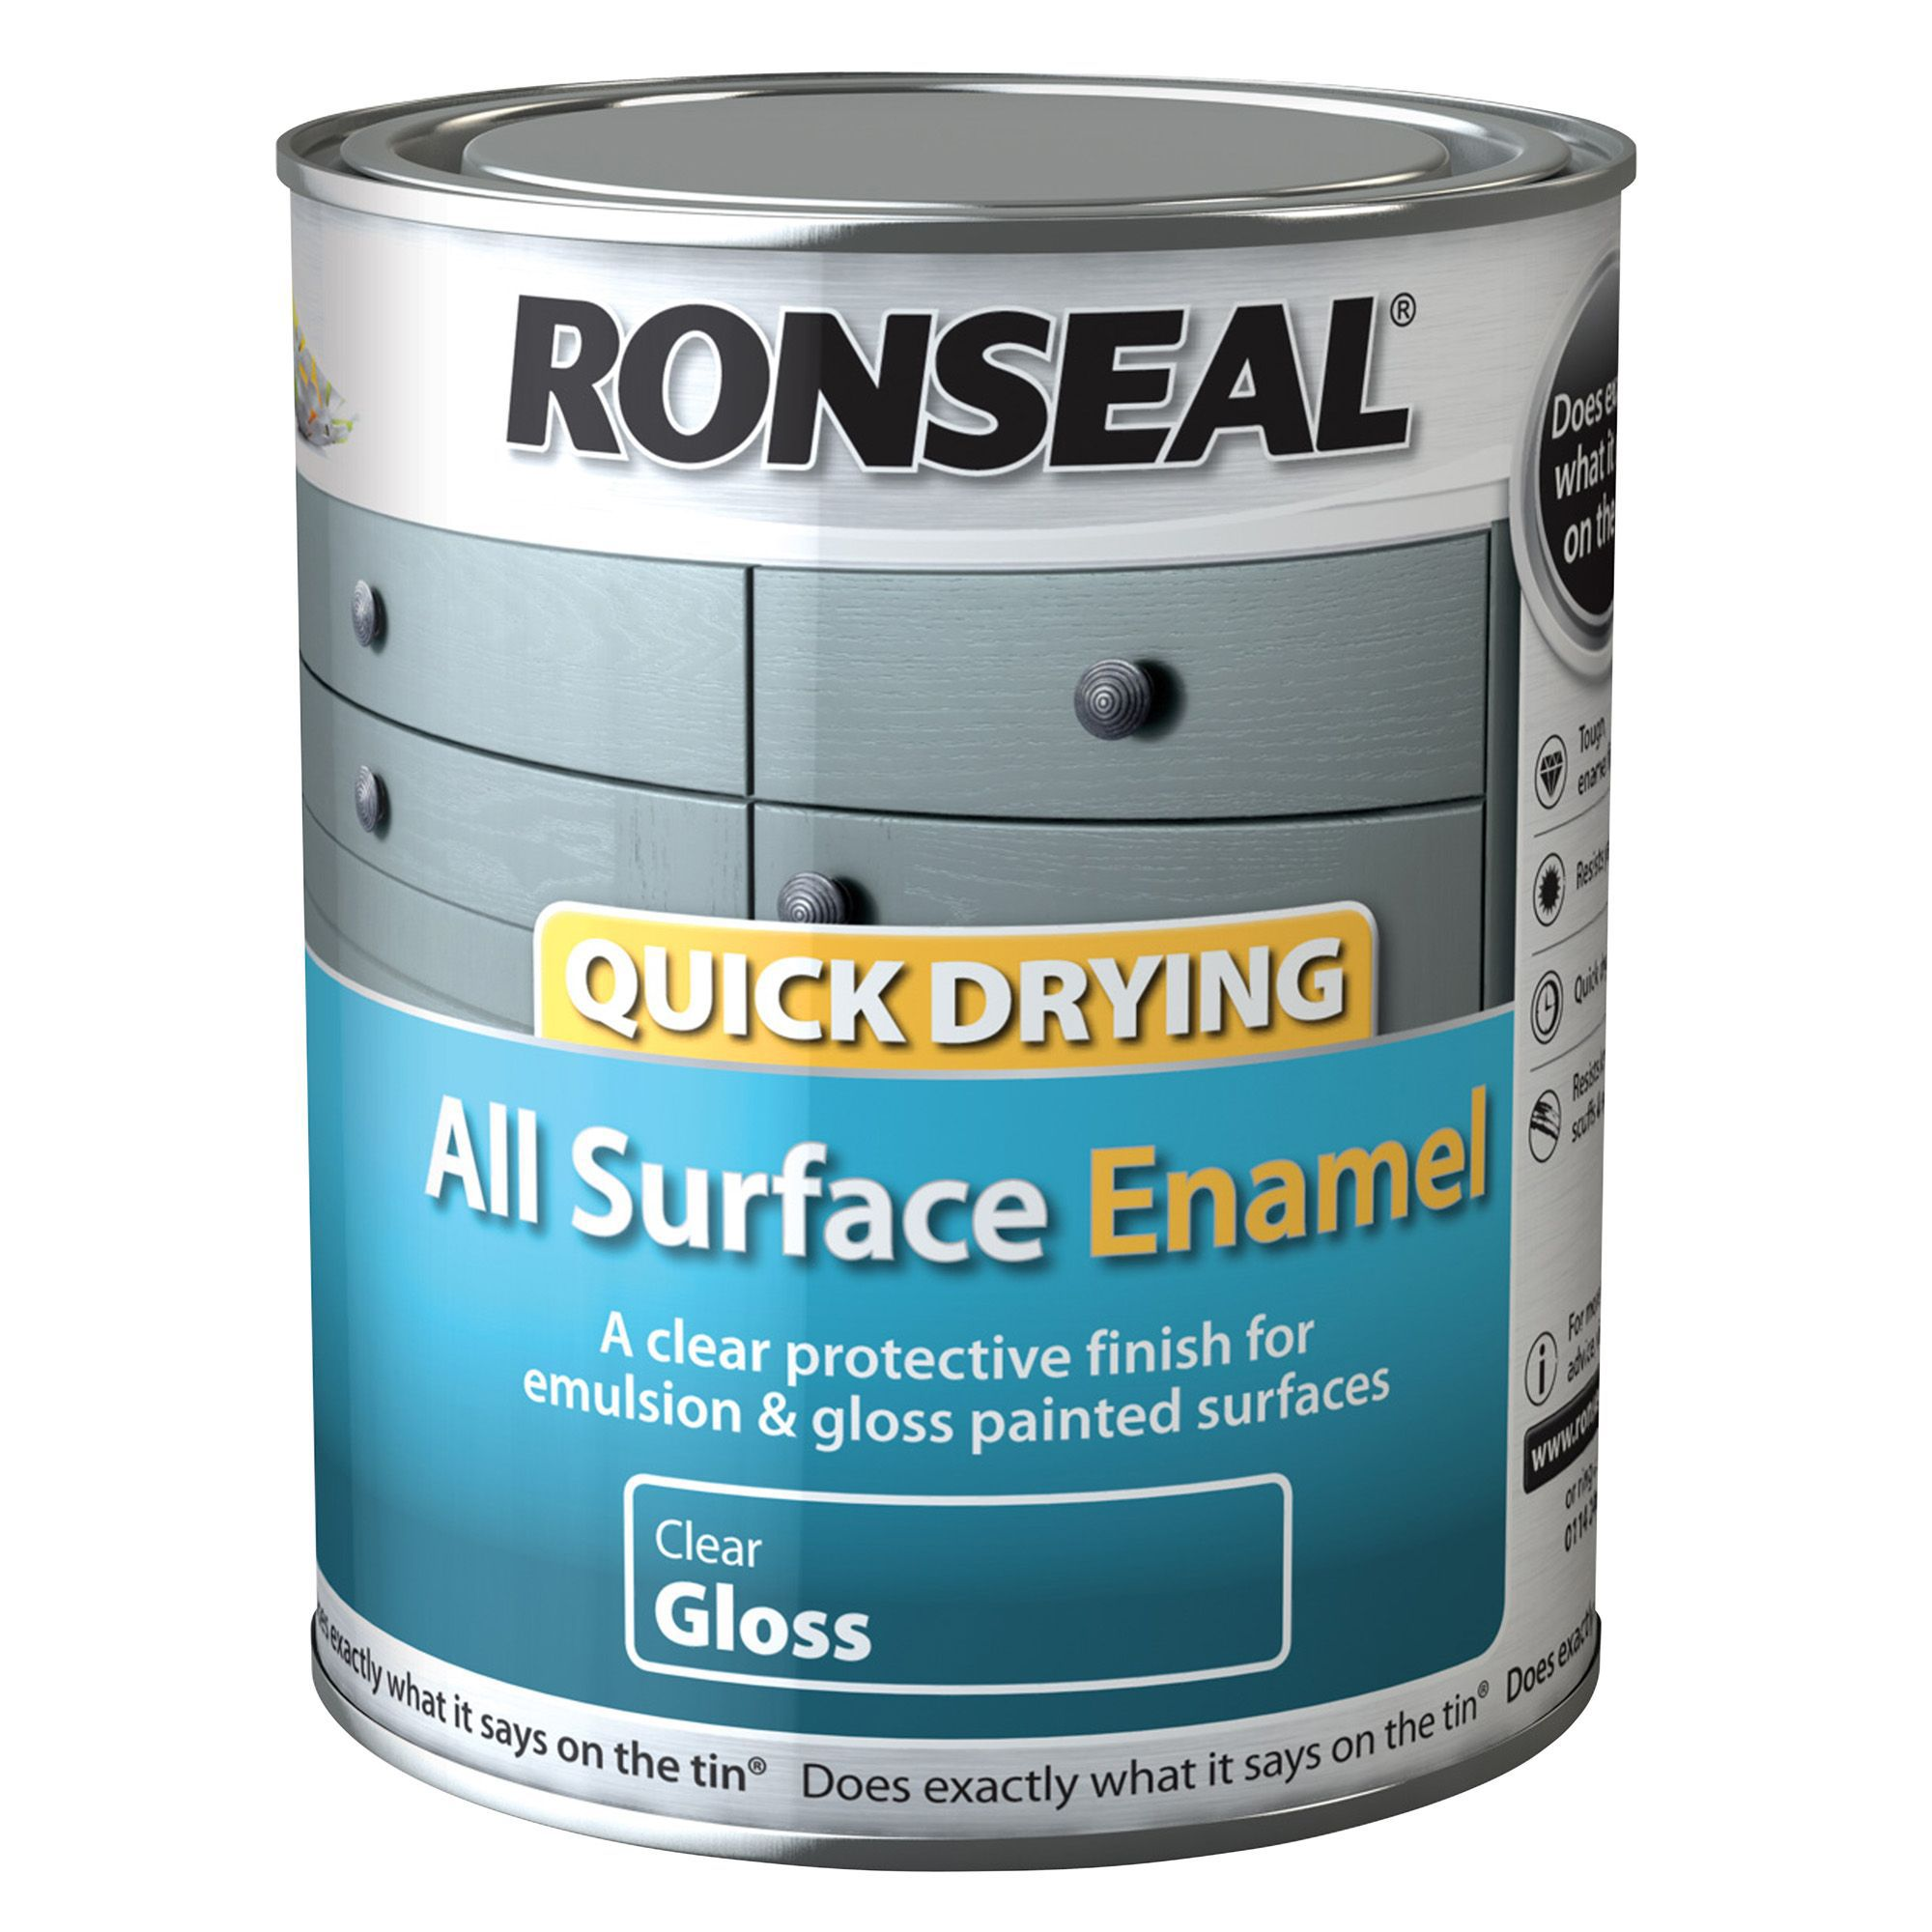 Ronseal Clear Gloss Enamel Paint 750 Ml Departments Diy At B Q